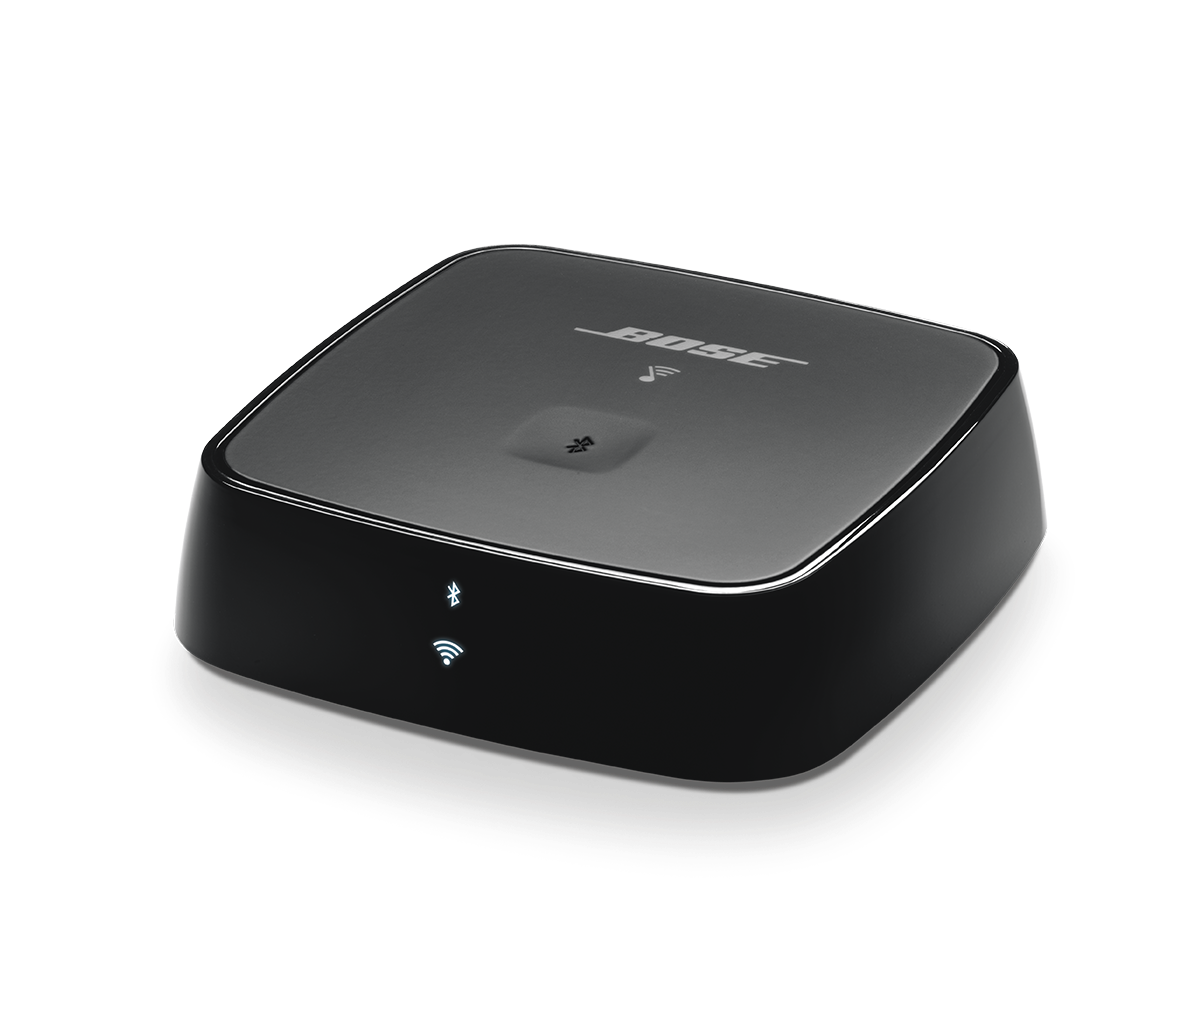 Bose_SoundTouch_Wireless_Link_adapter